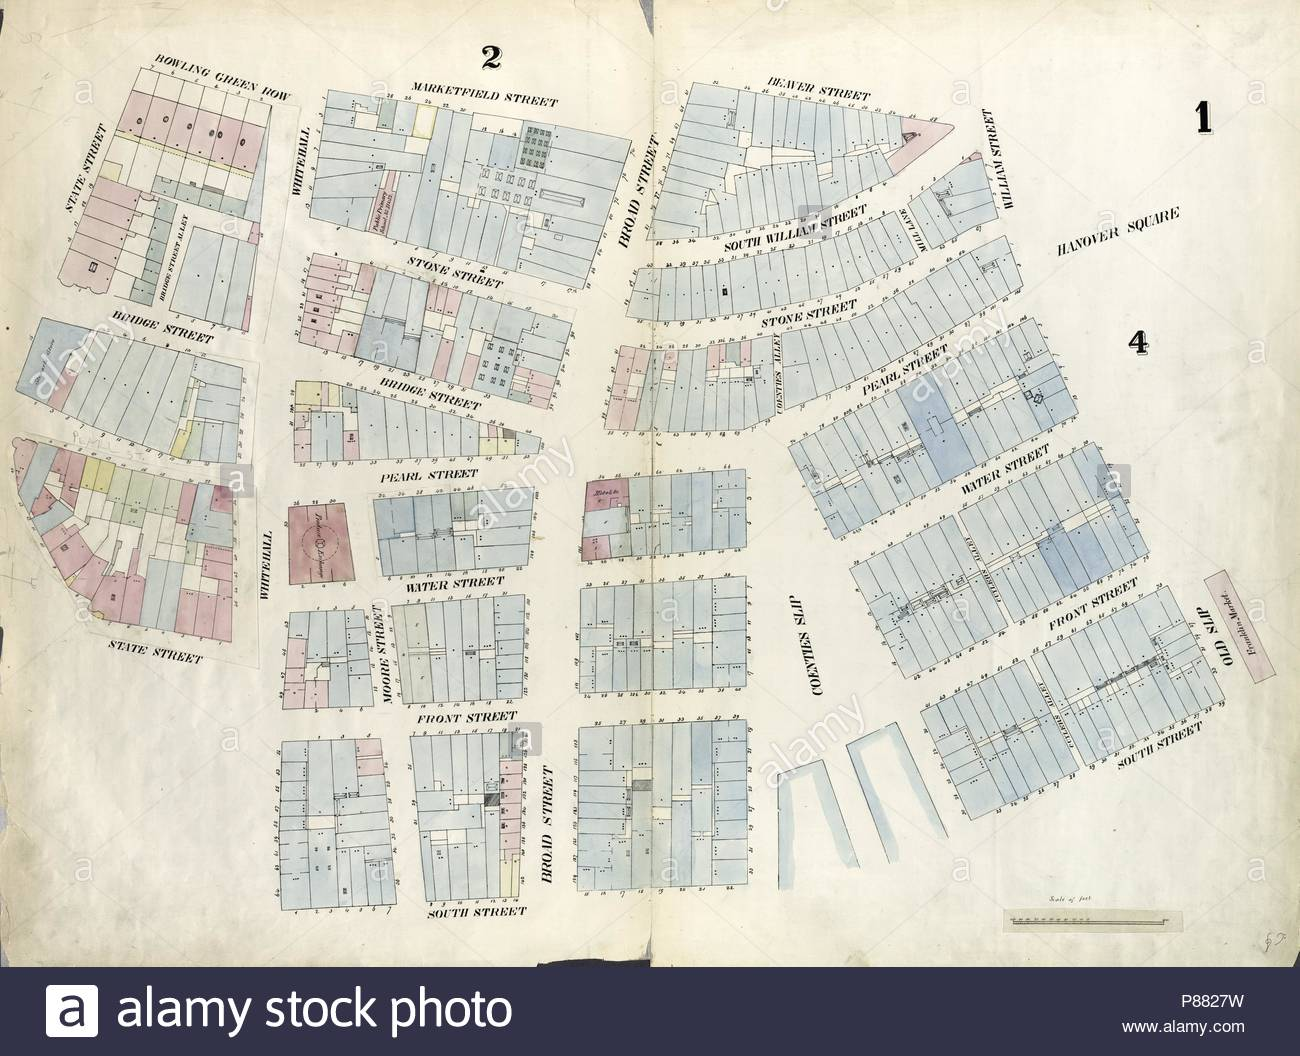 Plate 1: Map bounded by Battery Place, Marketfield Street, Broad